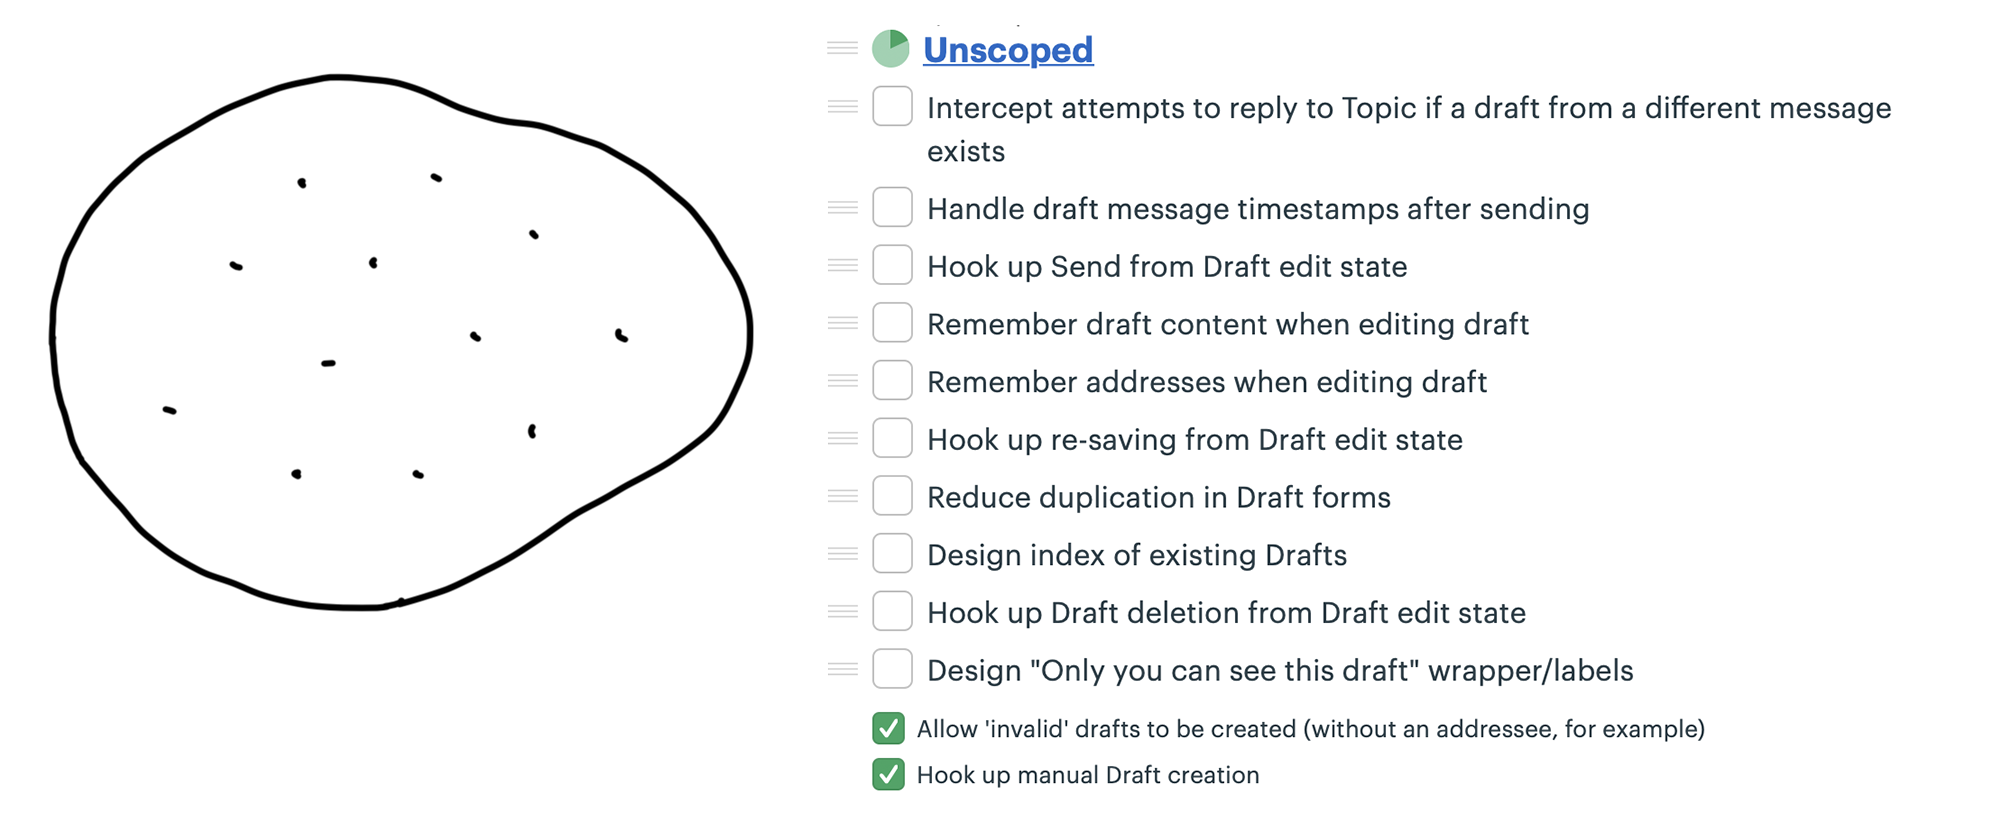 On the left, an enclosed outline that represents the project with scattered dots inside. On the right, a to-do list named 'Unscoped' with ten seemingly unrelated tasks.